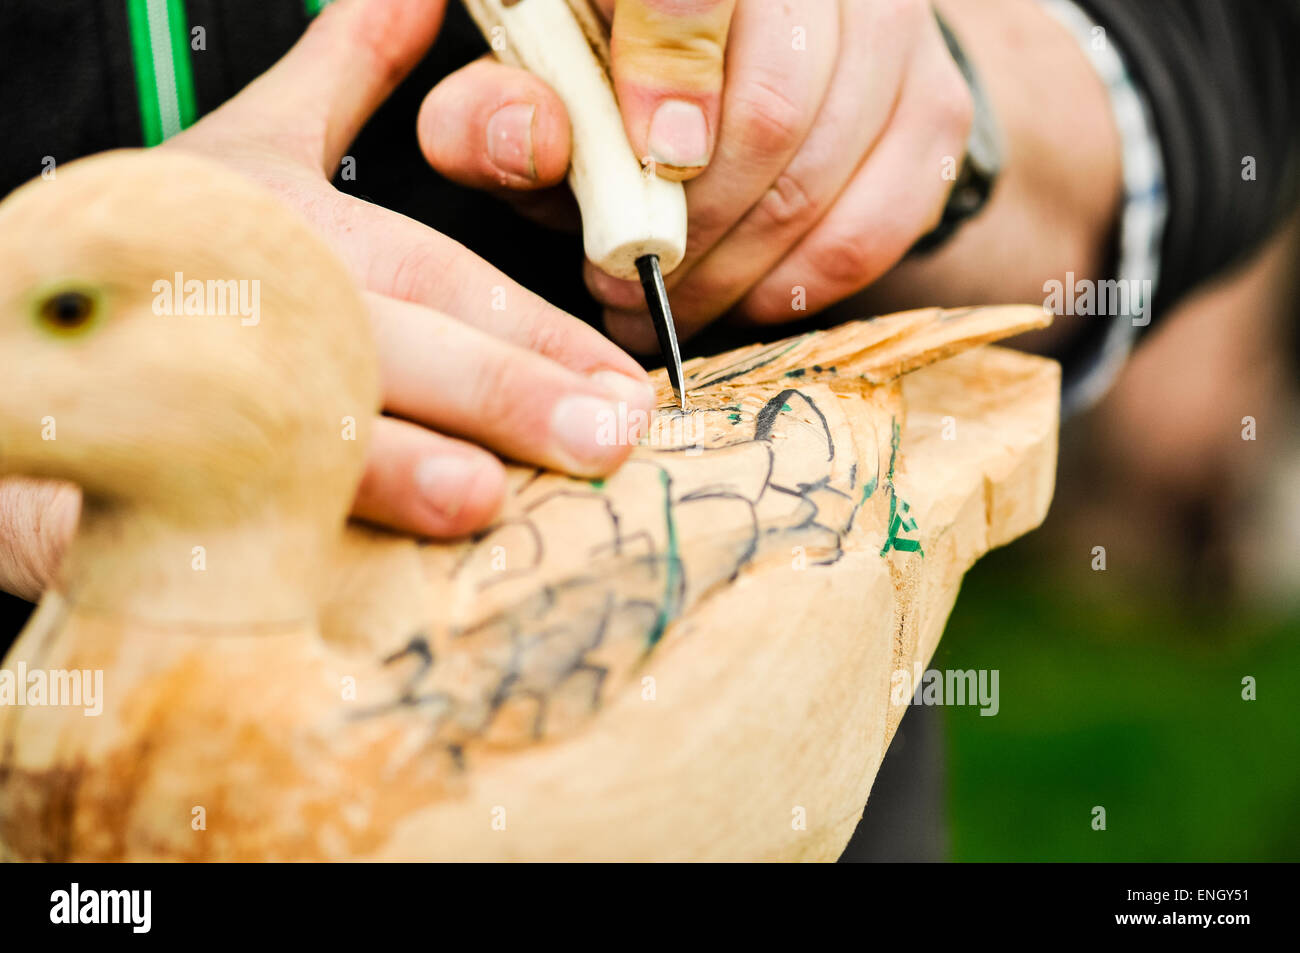 A man uses a small chisel to carve a wooden duck - Stock Image